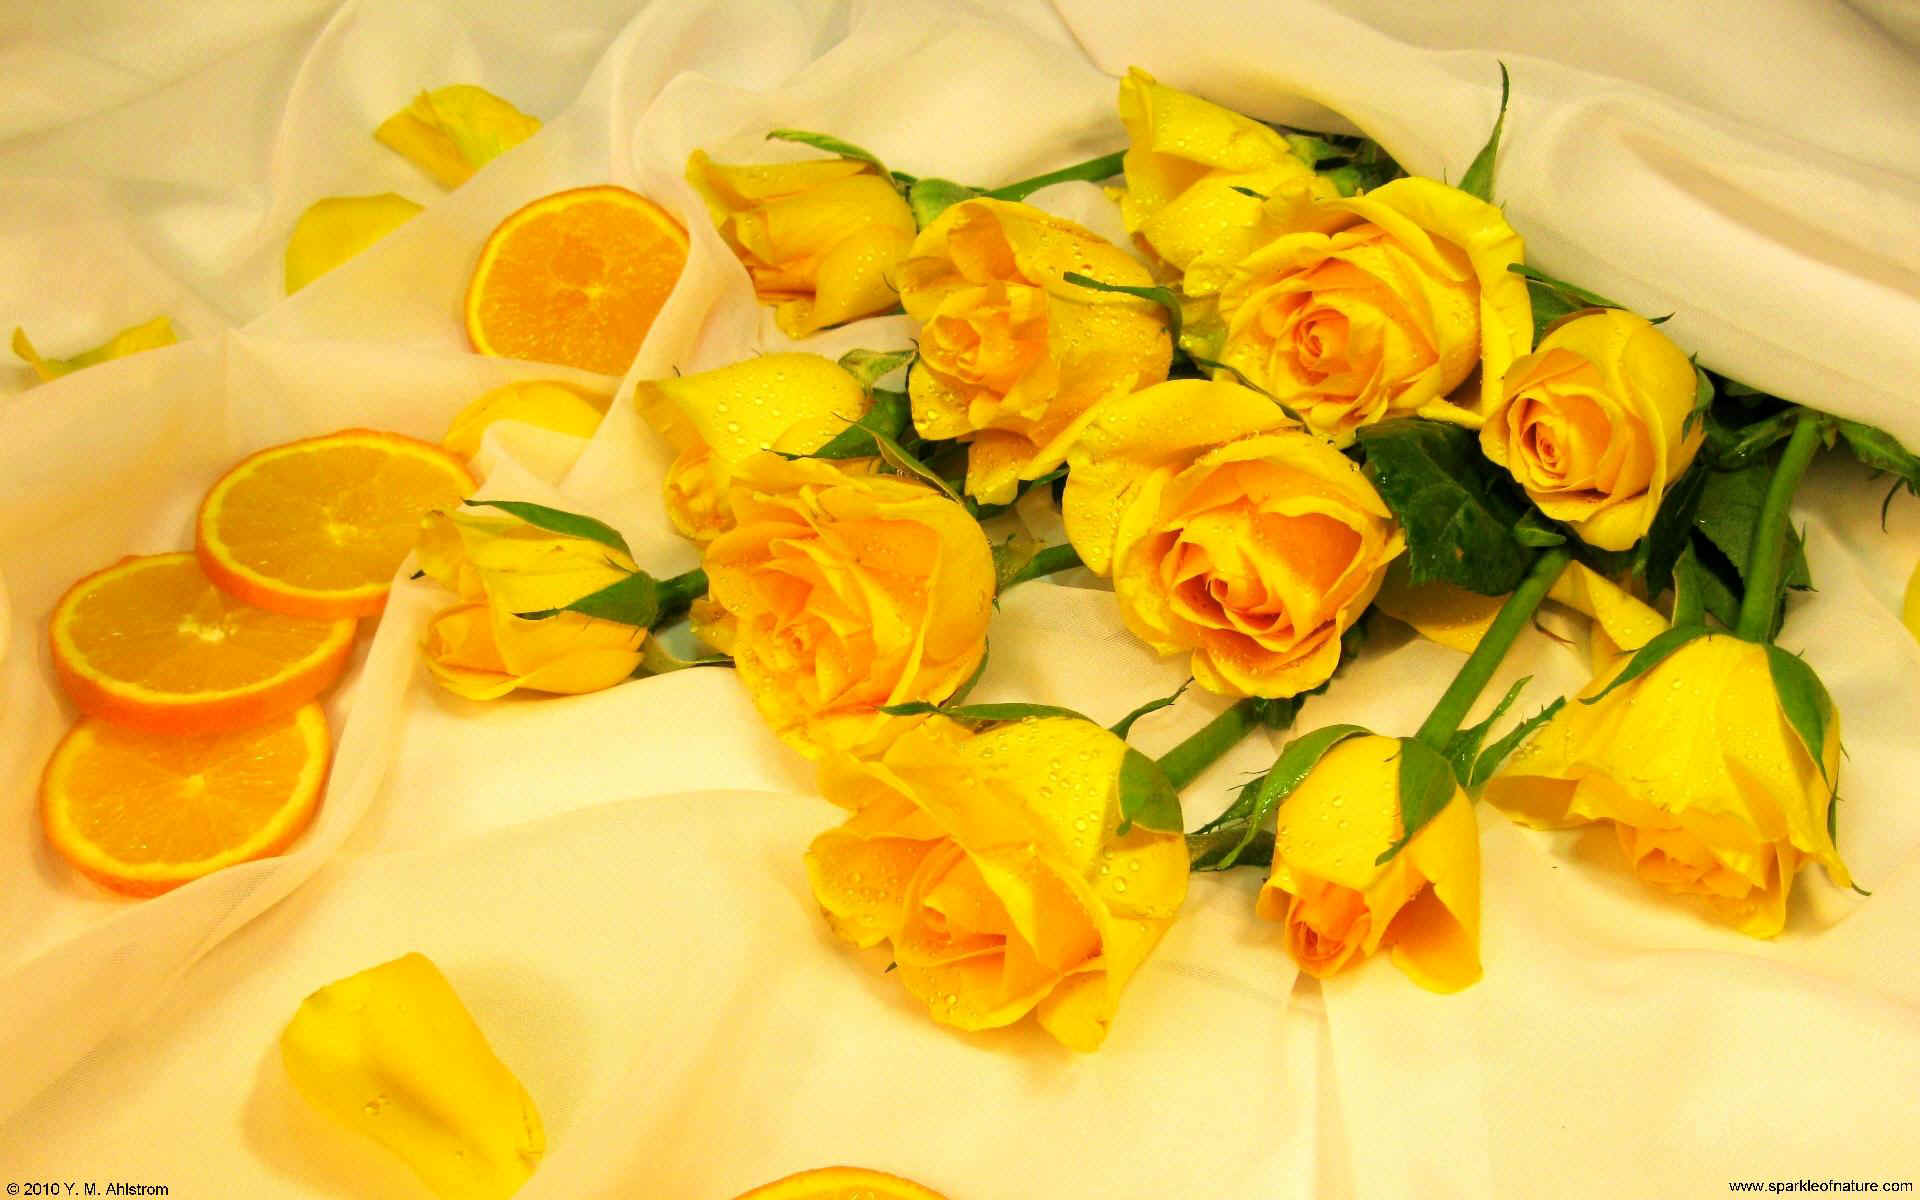 20091 oranges and yellow roses w 1920x1200.jpg (245547 bytes)